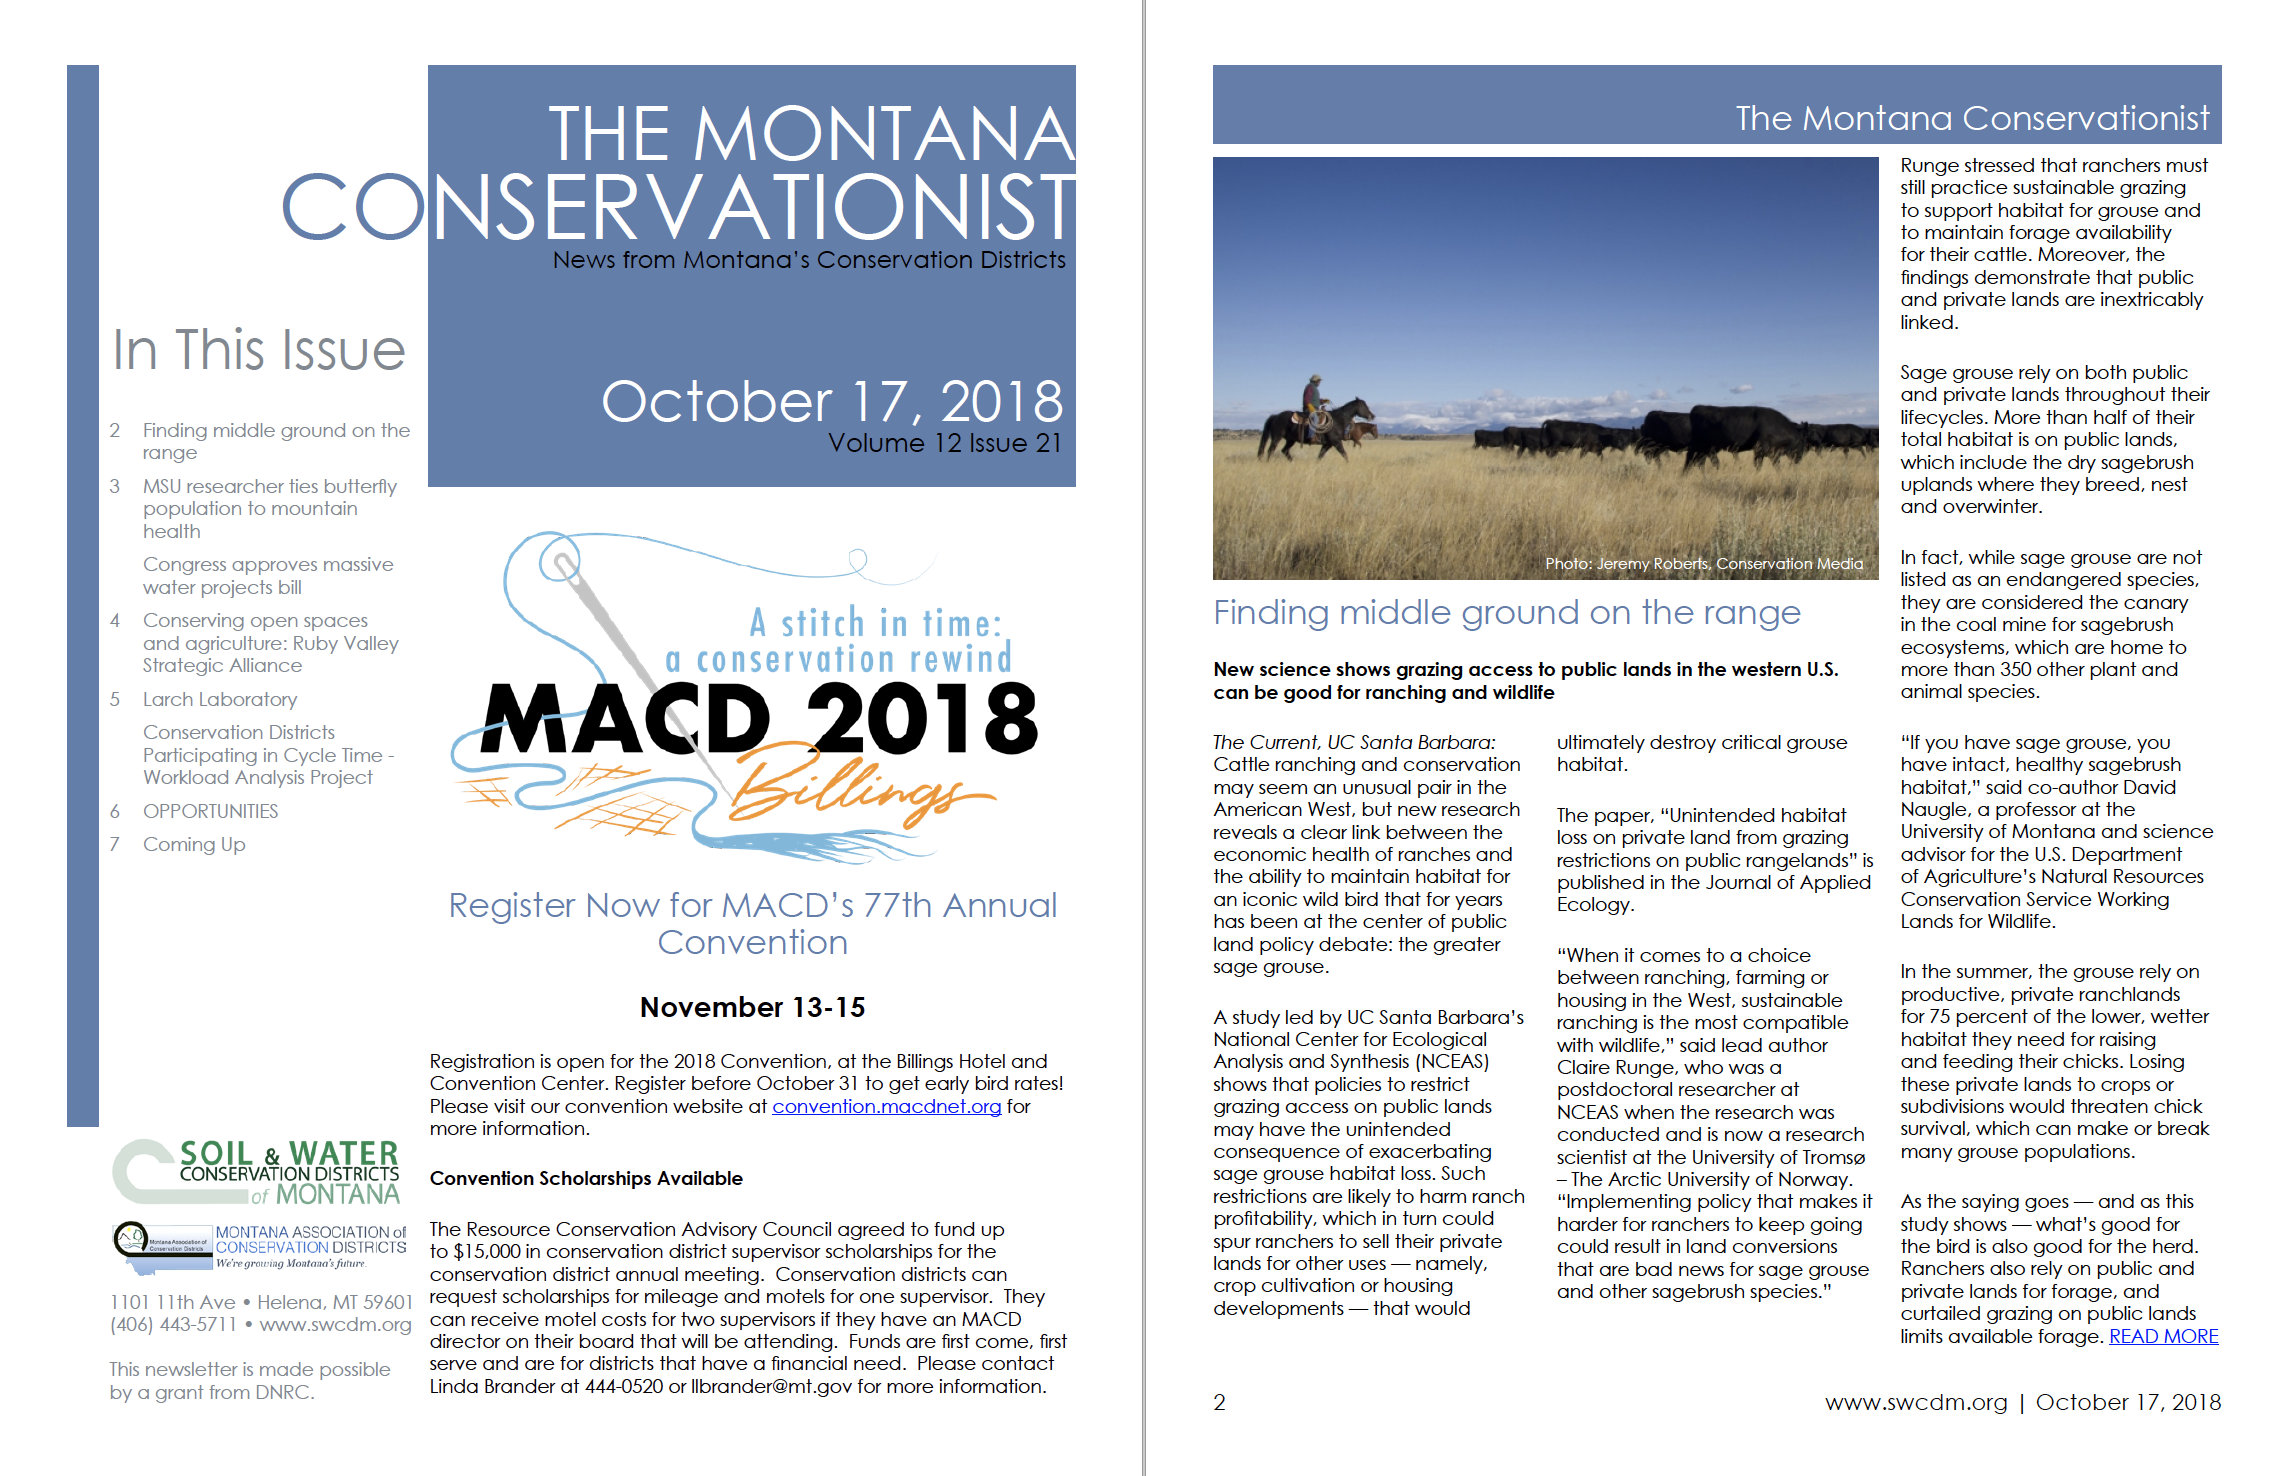 The Montana Conservationist October 17